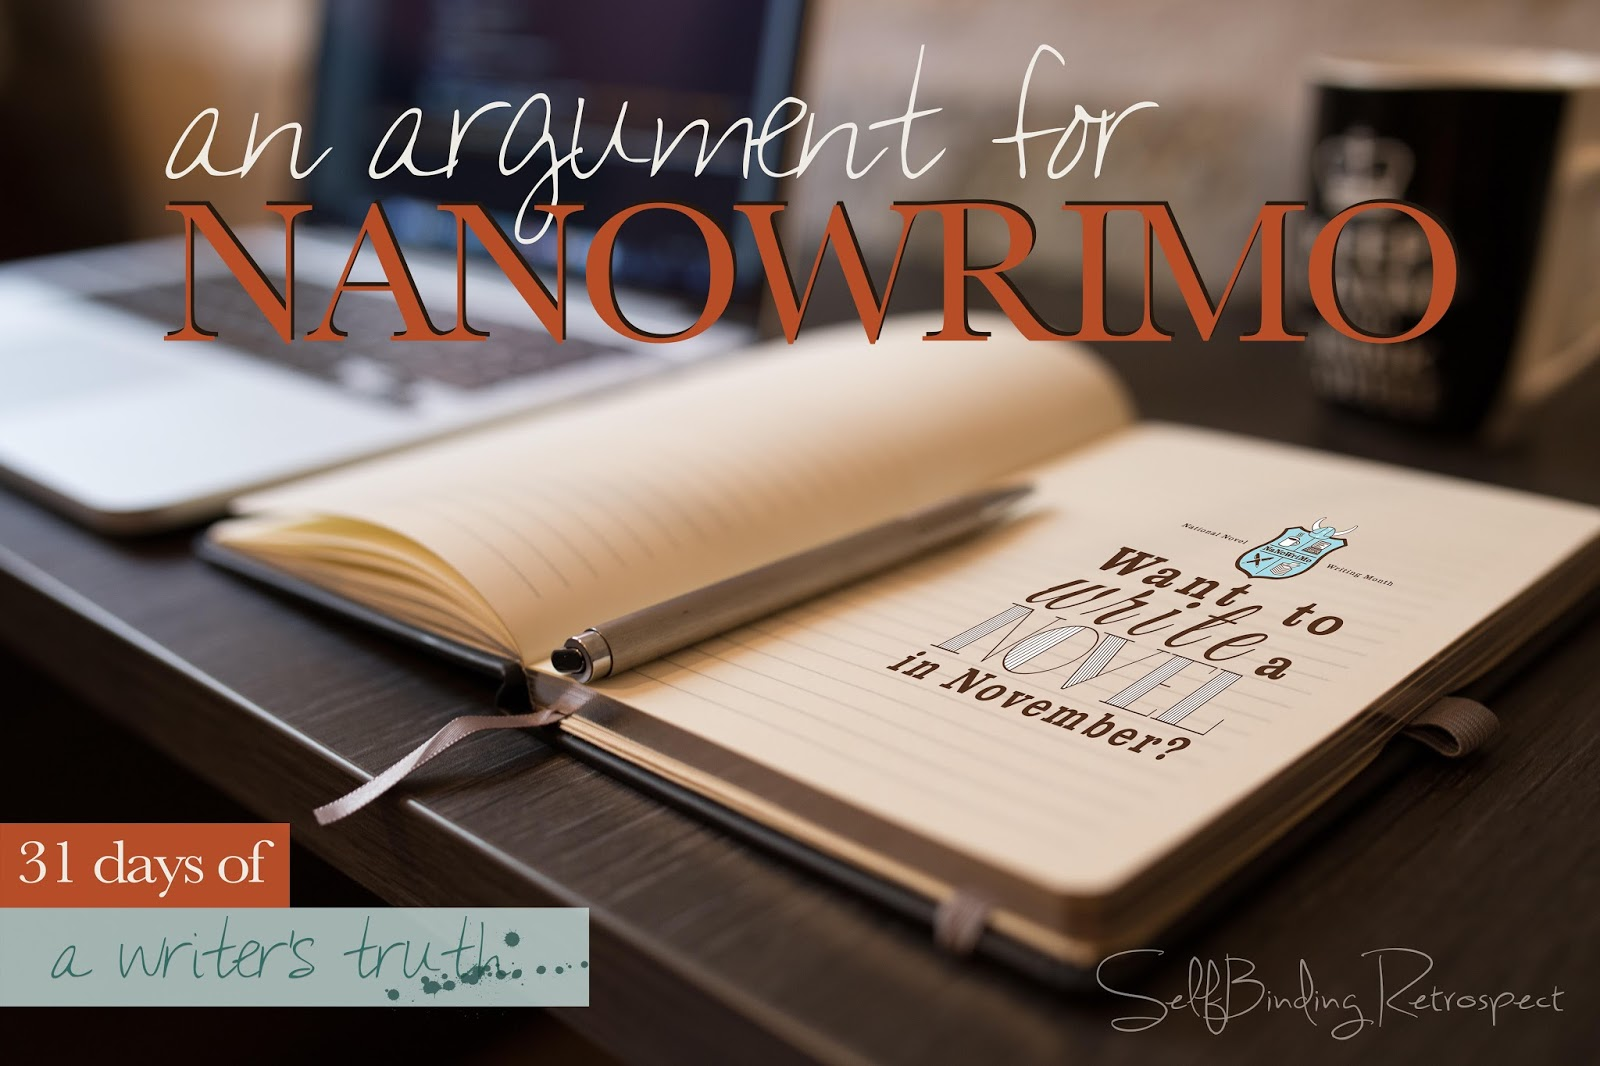 an argument for nanowrimo #write31days